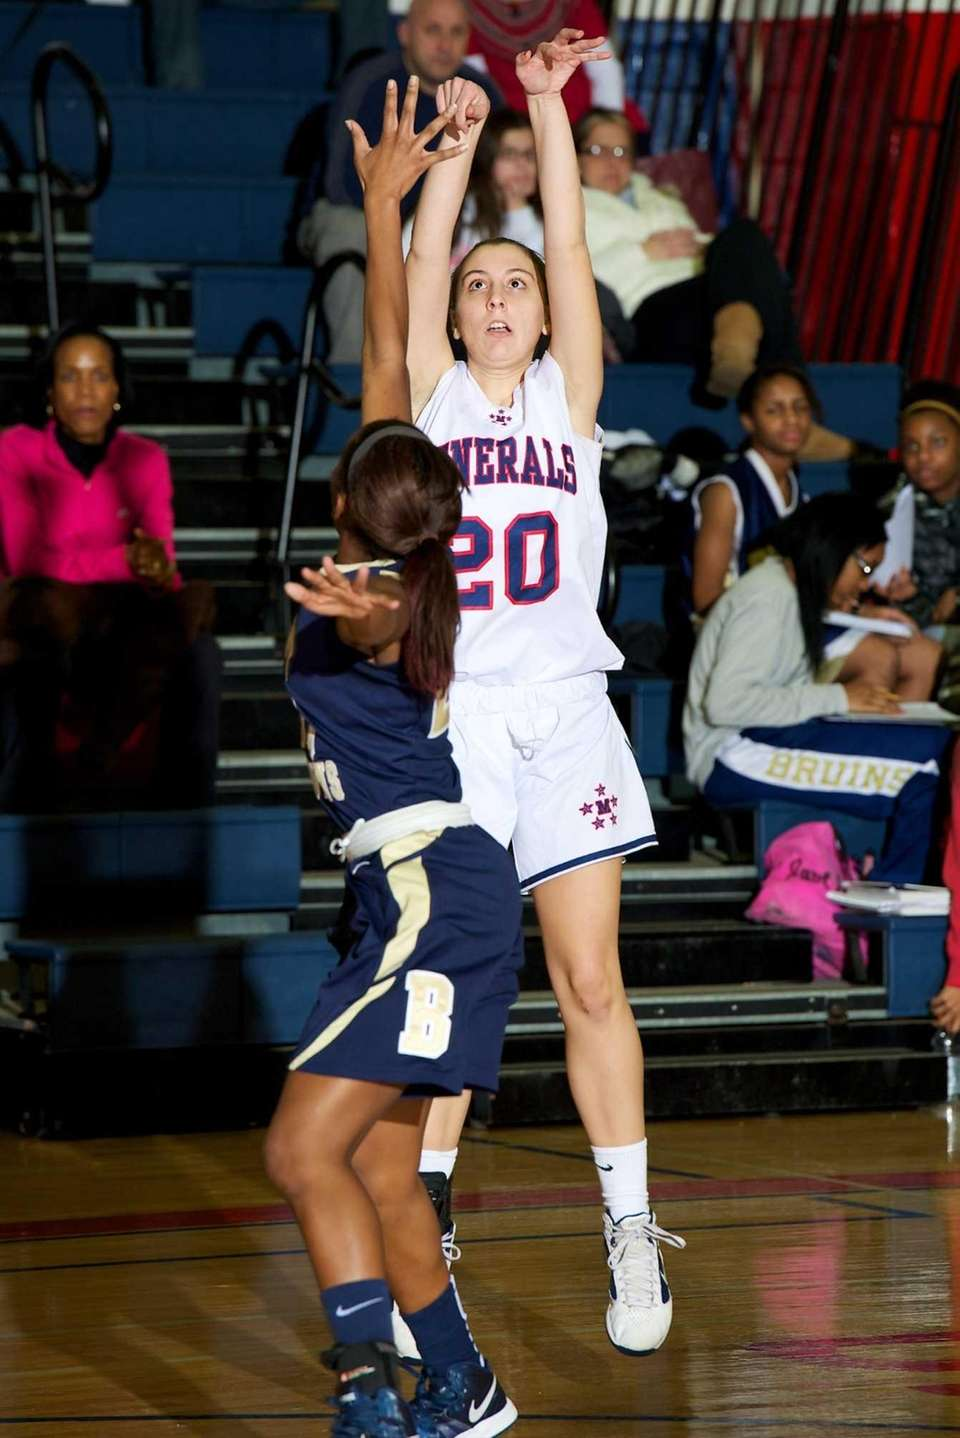 MacArthur junior Jen Gubell takes a jump shot